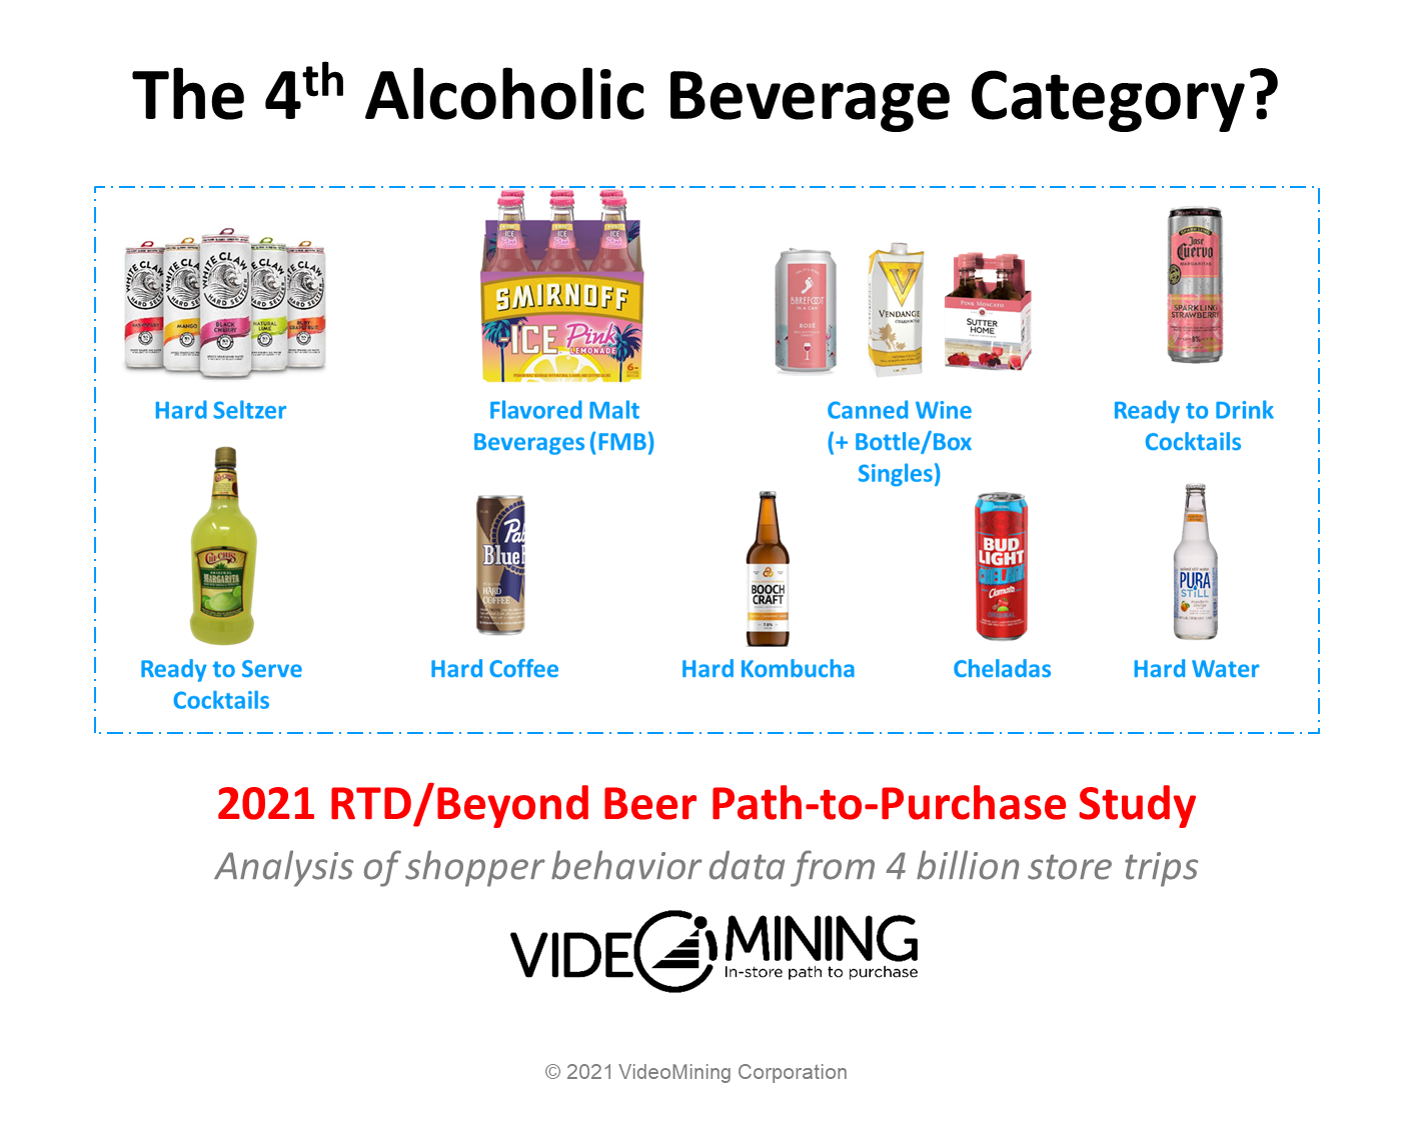 The birth of 4th alcoholic beverage category